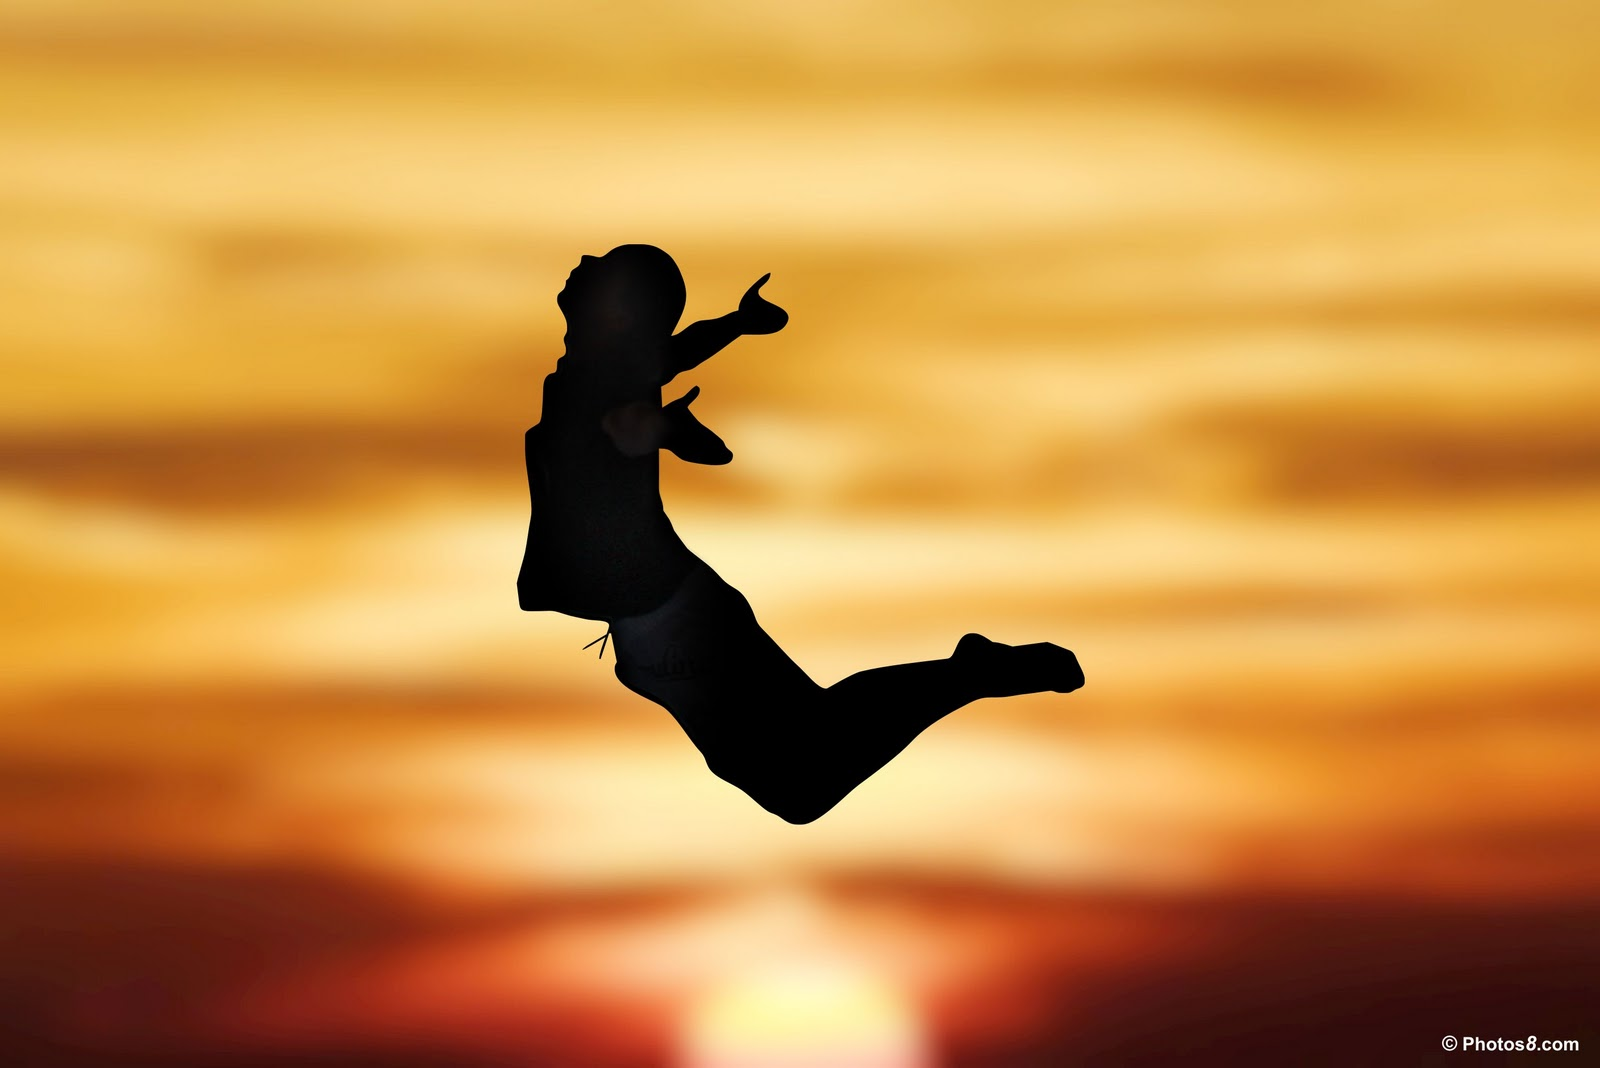 jumping_man_at_sunset_silhouette-other.jpg